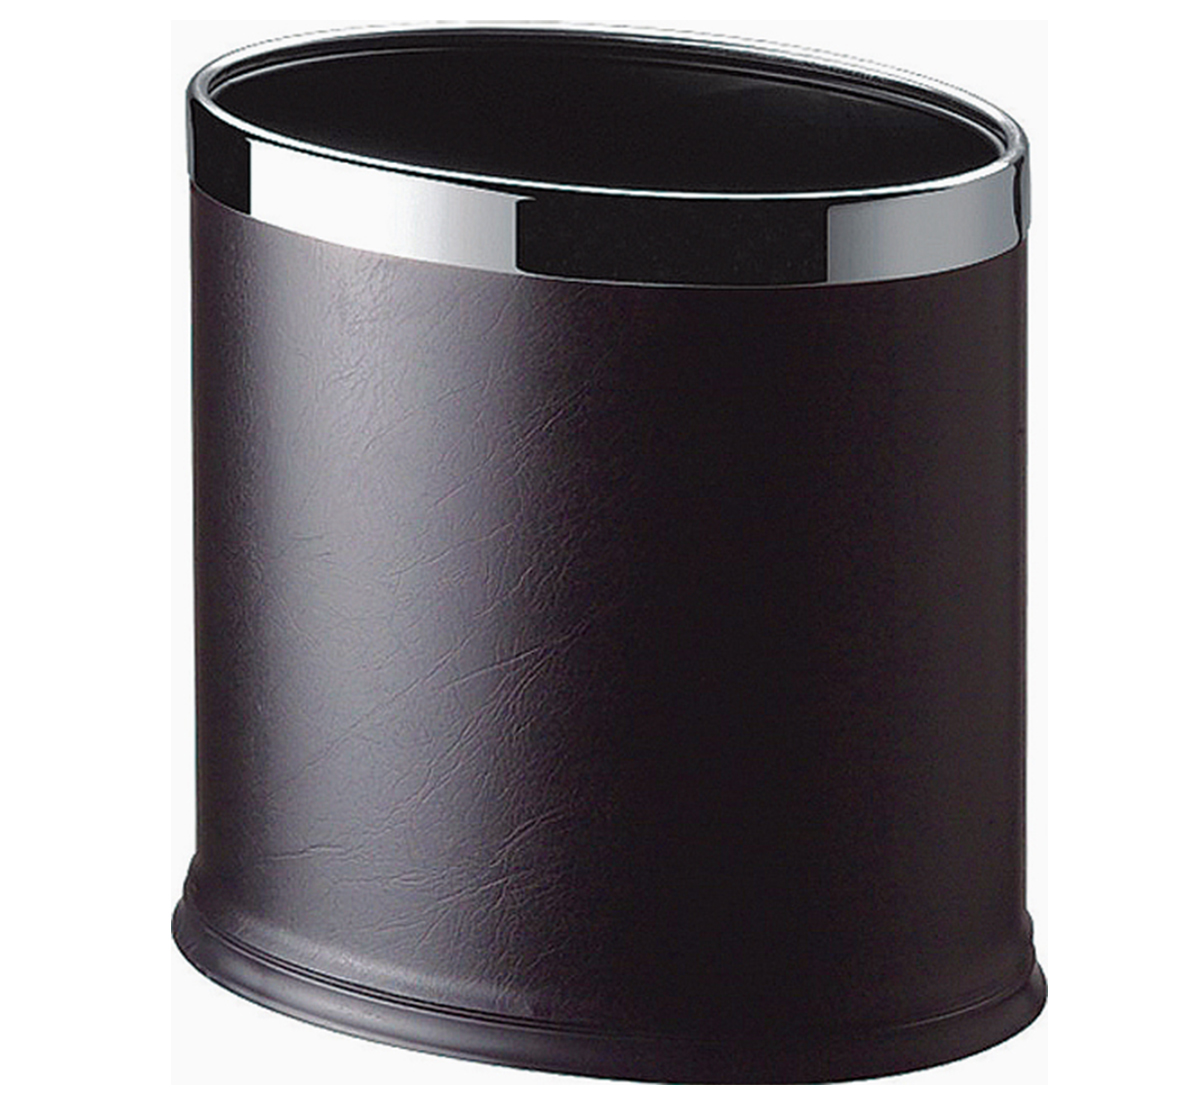 Oval Shape Dustbin